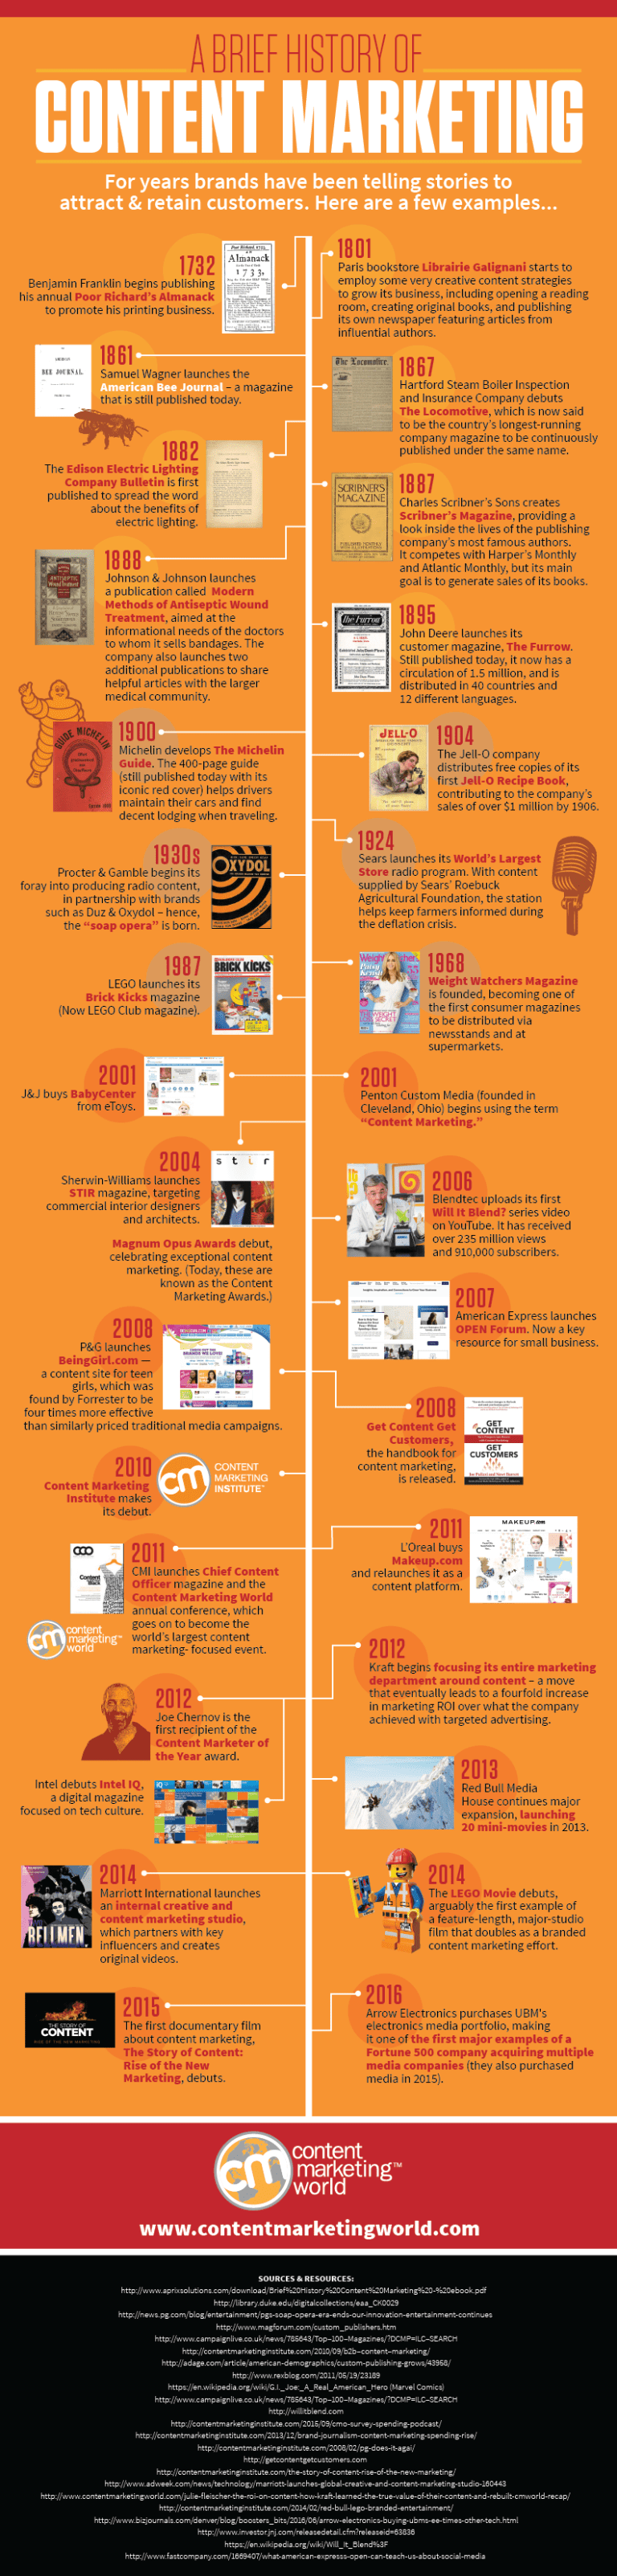 History-of-Content-Marketing-Infographic-2016_FINAL-768x3206.png